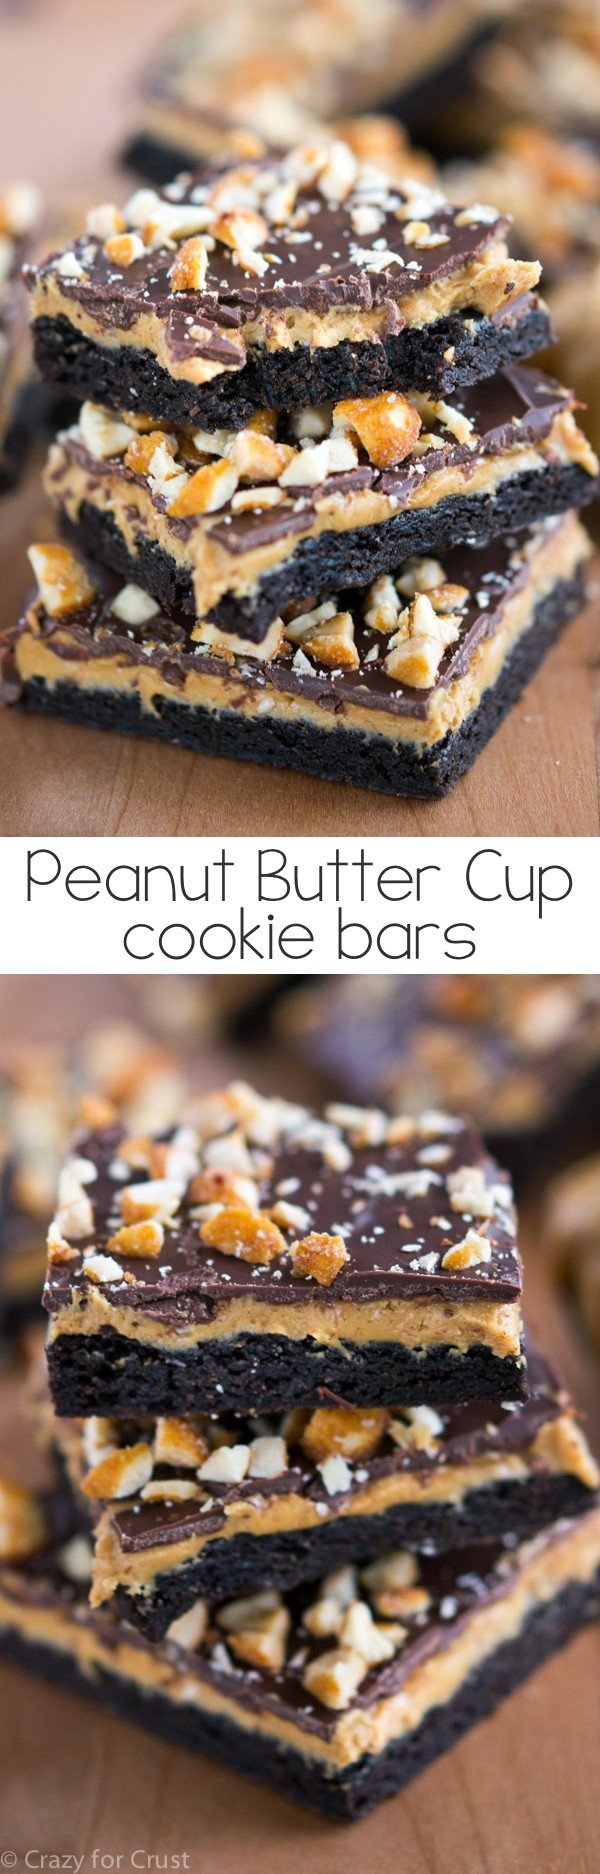 Peanut Butter Cup Cookie Bars are like a peanut butter cup in bar cookie form!